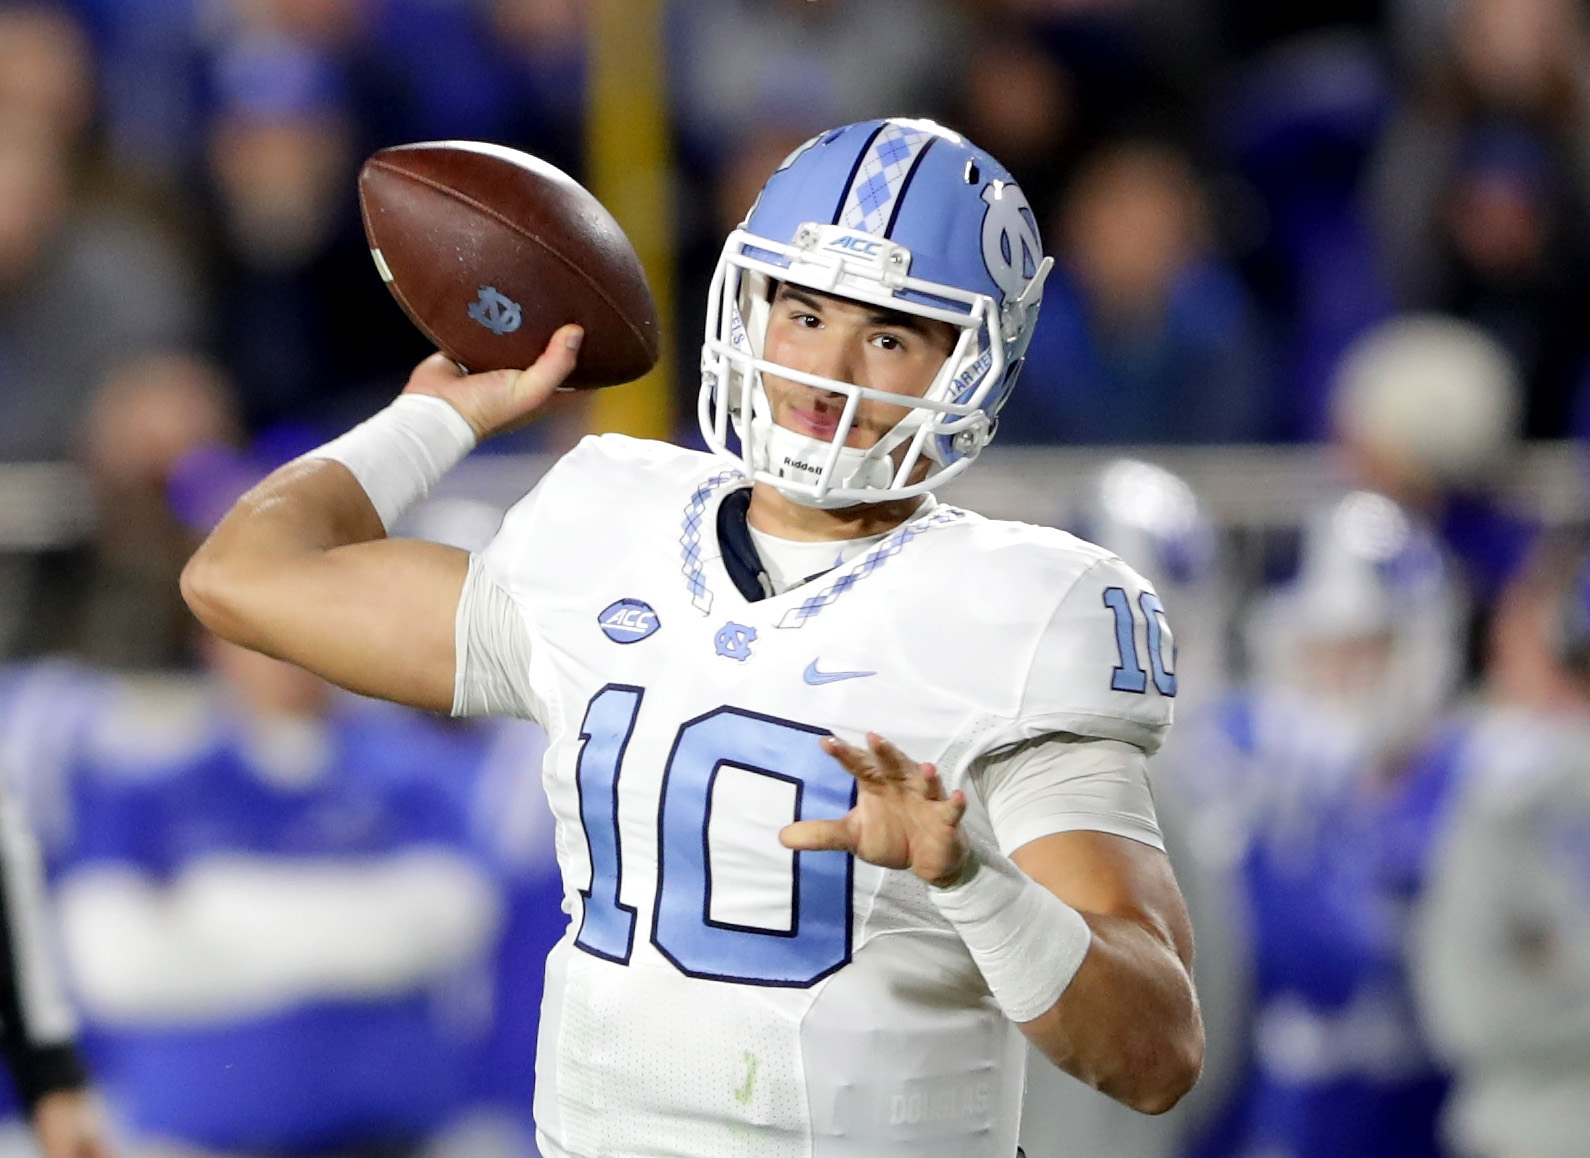 Are the Bills interested in making Mitch Trubisky of the North Carolina Tar Heels their first-round pick in the 2017 NFL Draft? (Photo by Streeter Lecka/Getty Images)